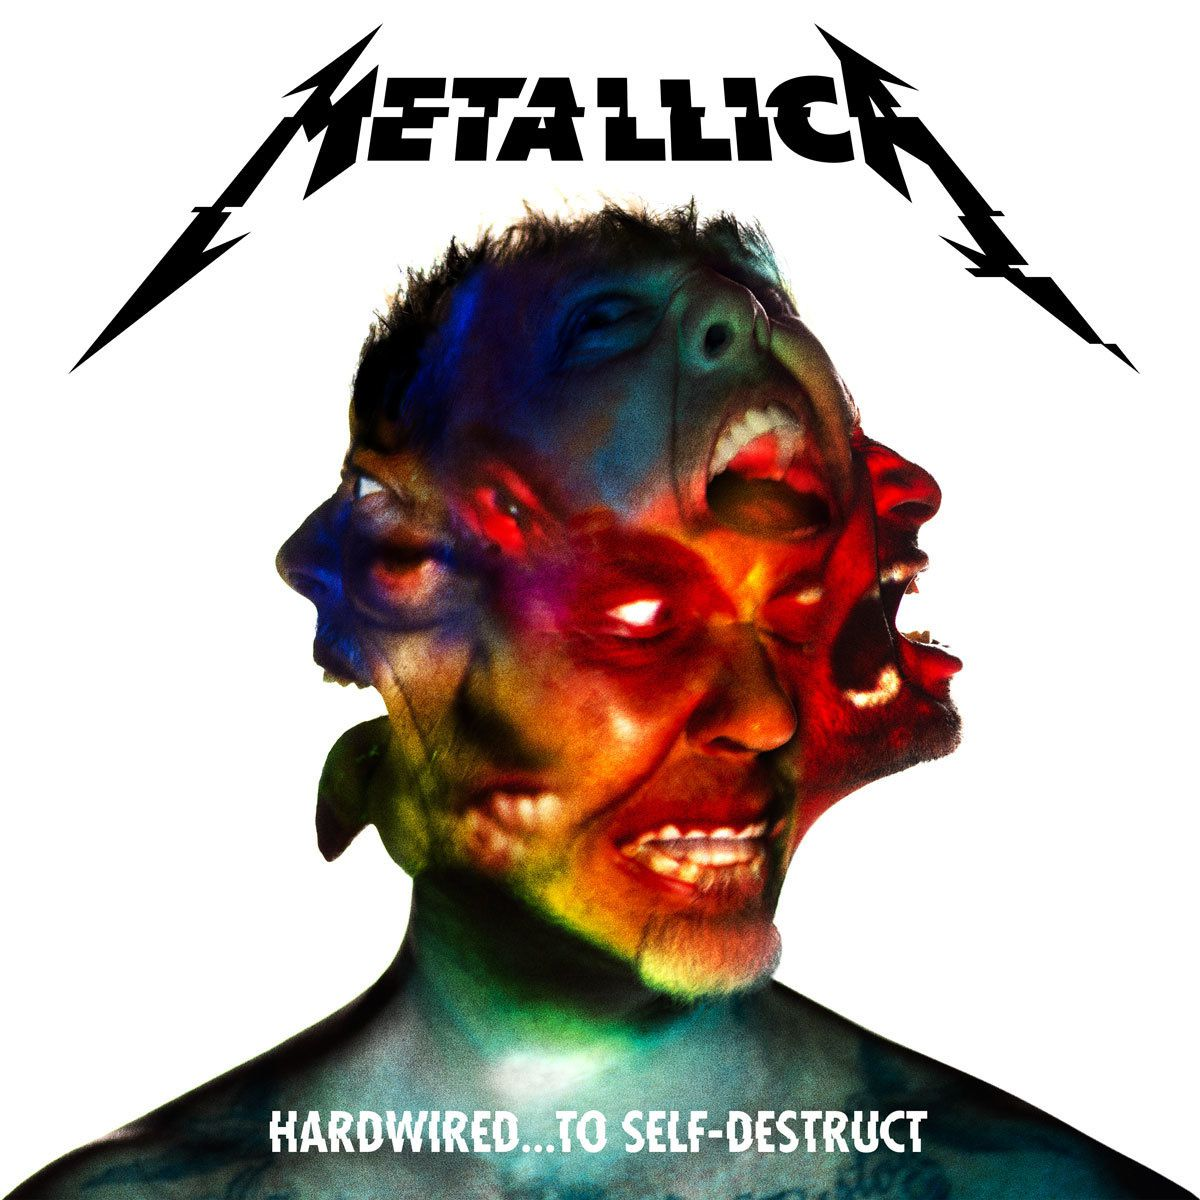 METALLICA - Hardwired... To Self-Destruct (2016)